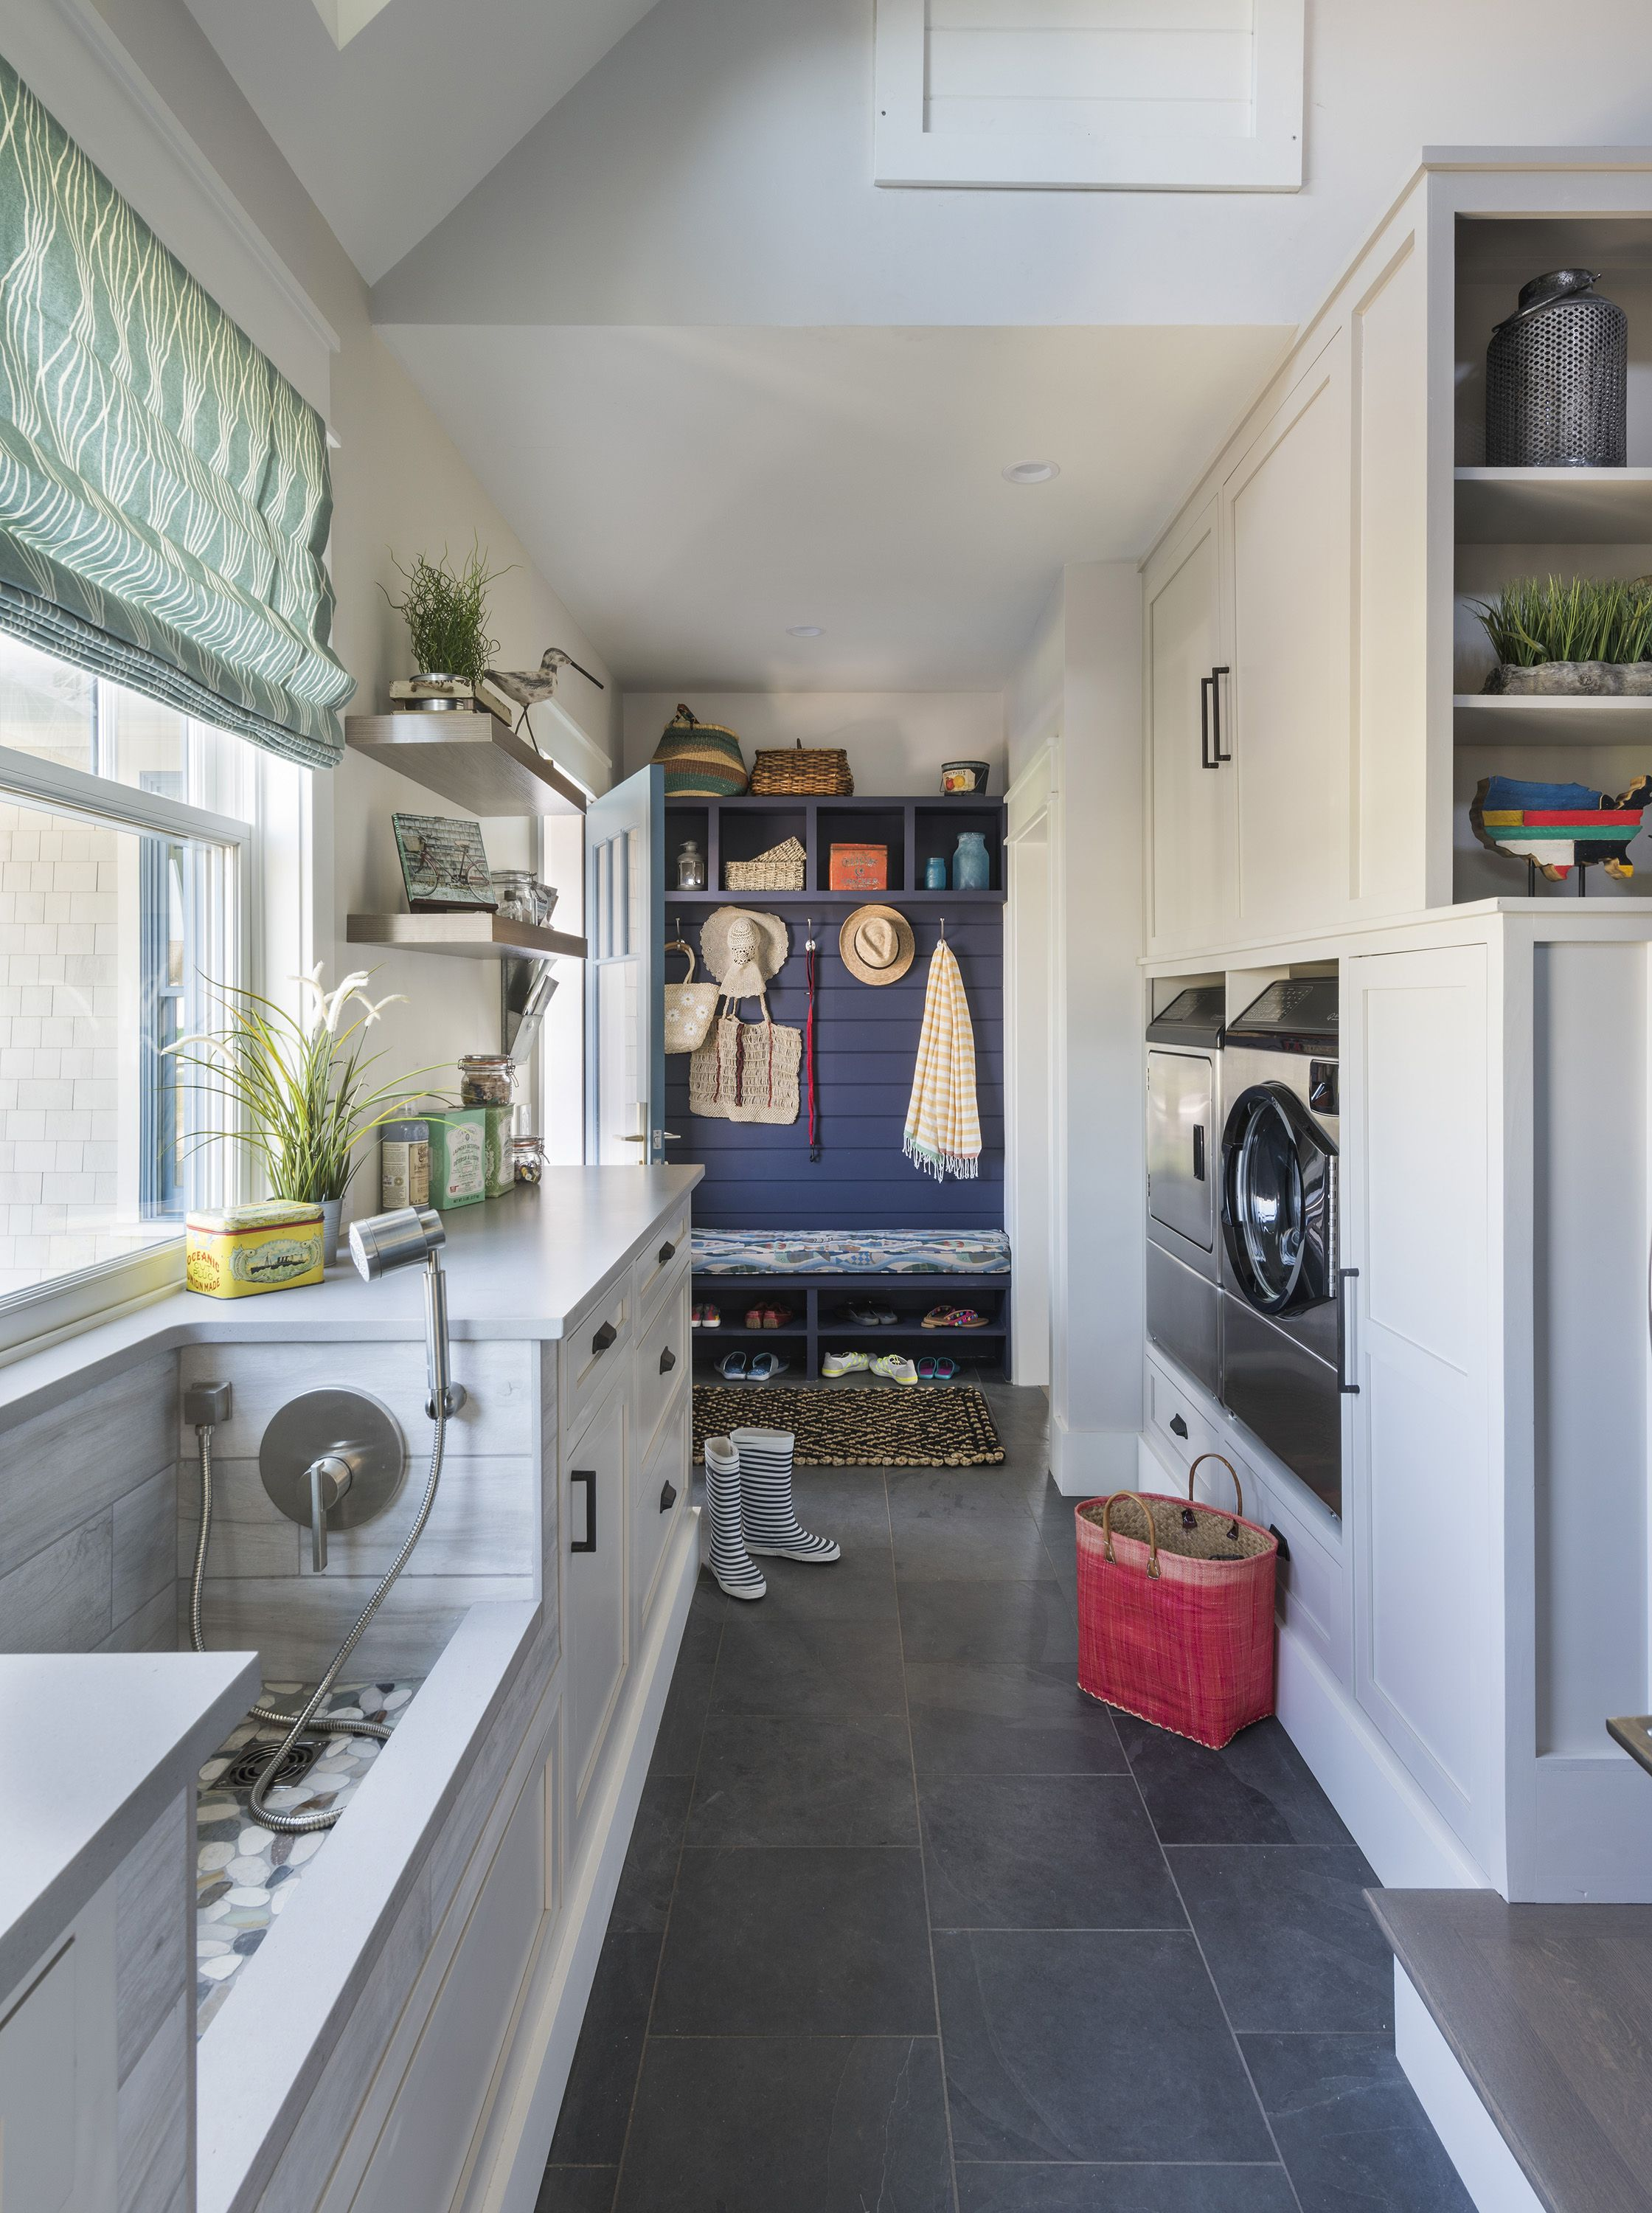 laundry room, grey floorm white wall, white cabinet, white big sink, blue accent wall, bench, washing machine